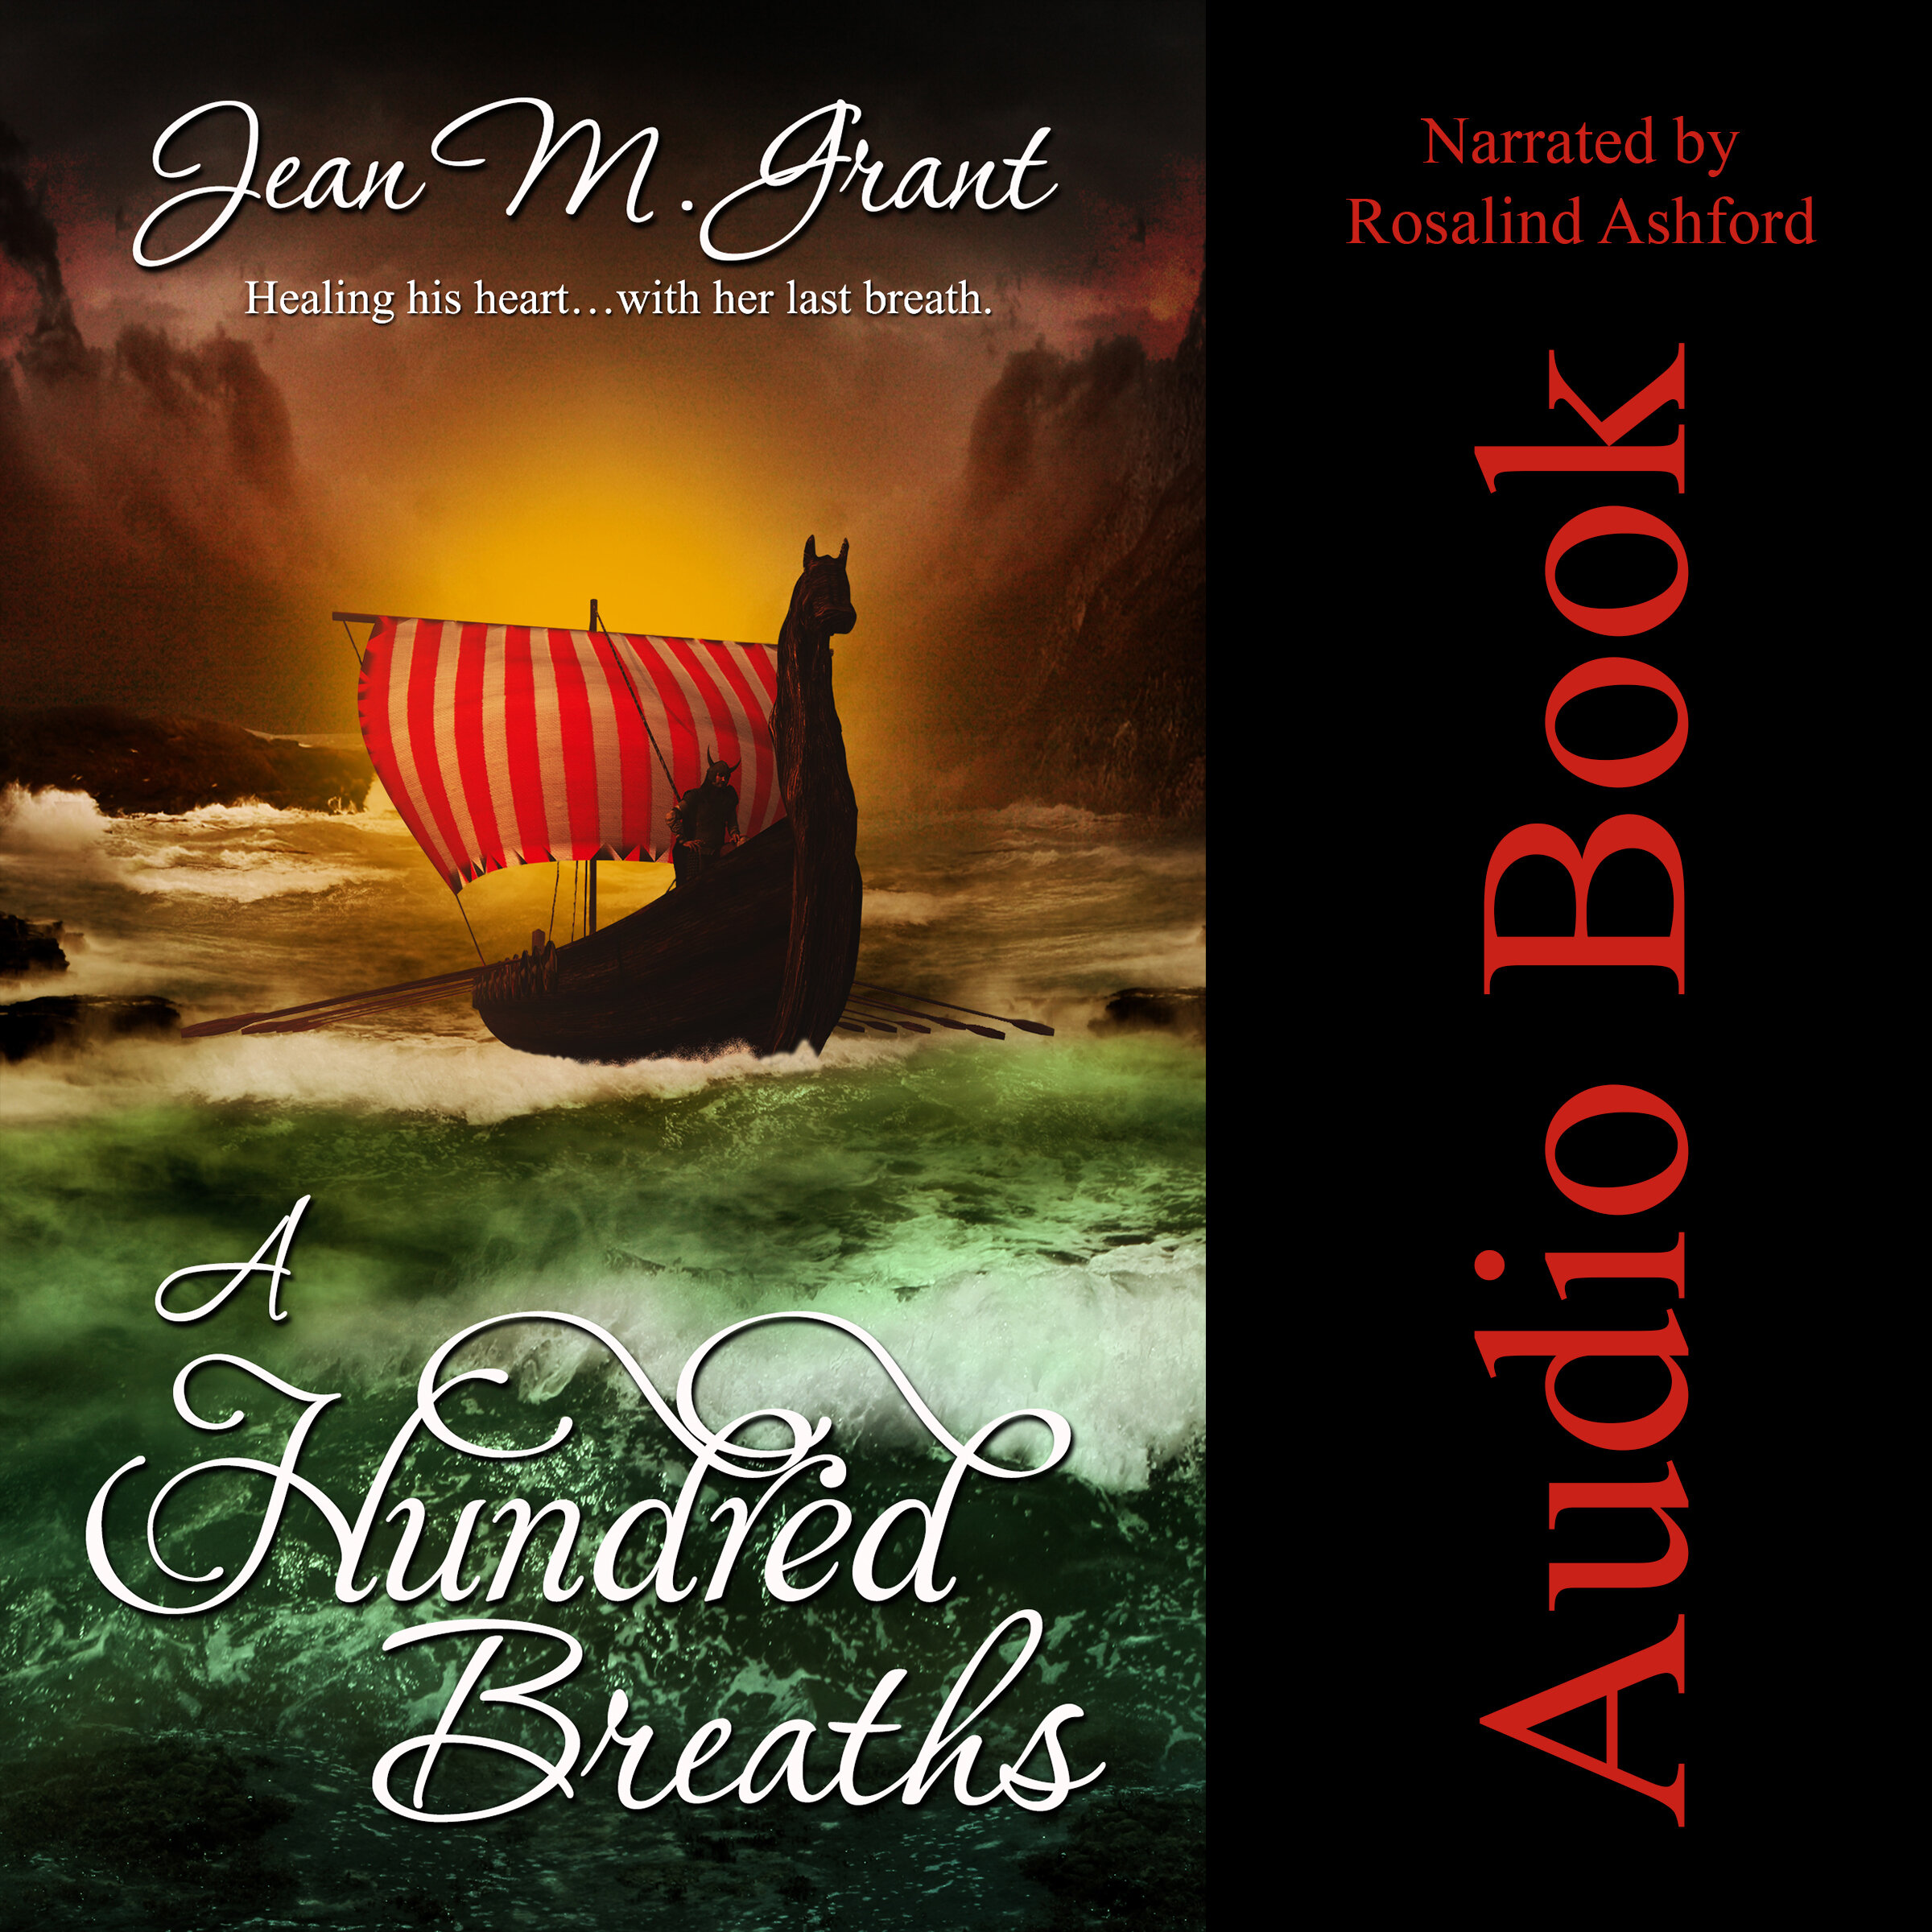 AHundredBreaths_w12914_2400 audio cover.jpg